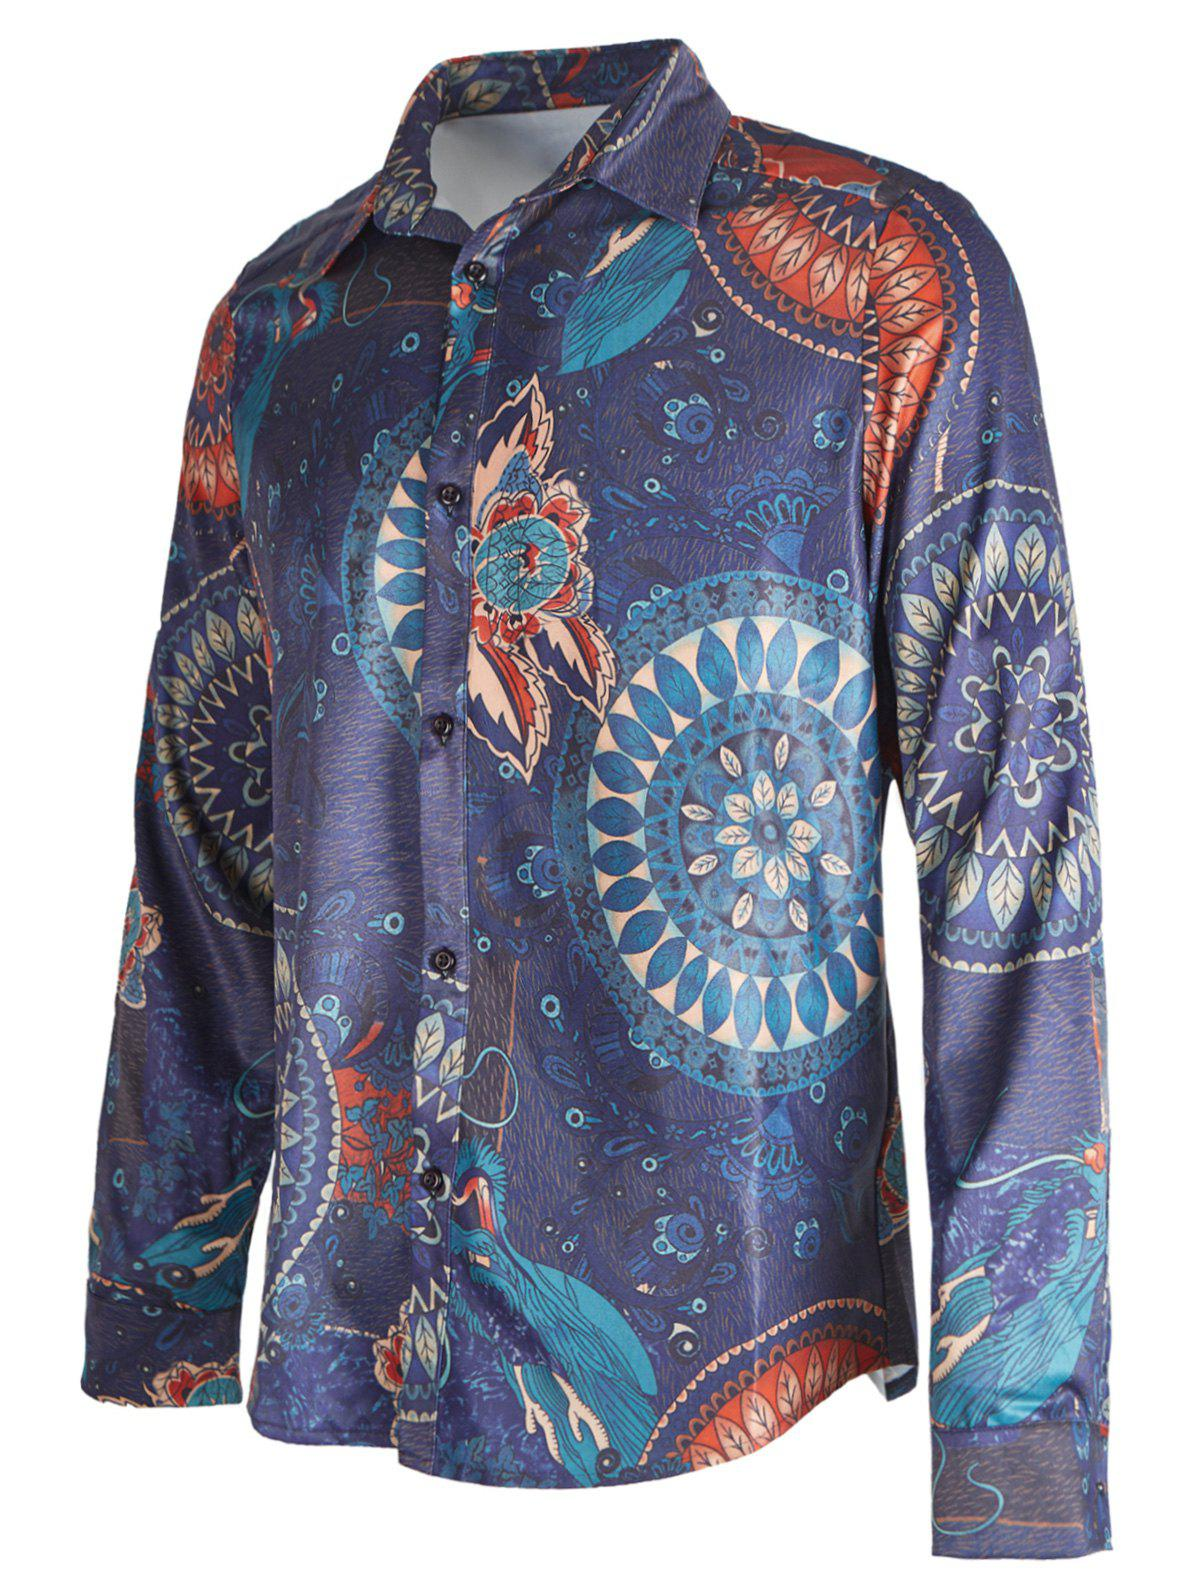 Ethnic Floral Printed Long Sleeve Shirt - DEEP BLUE S